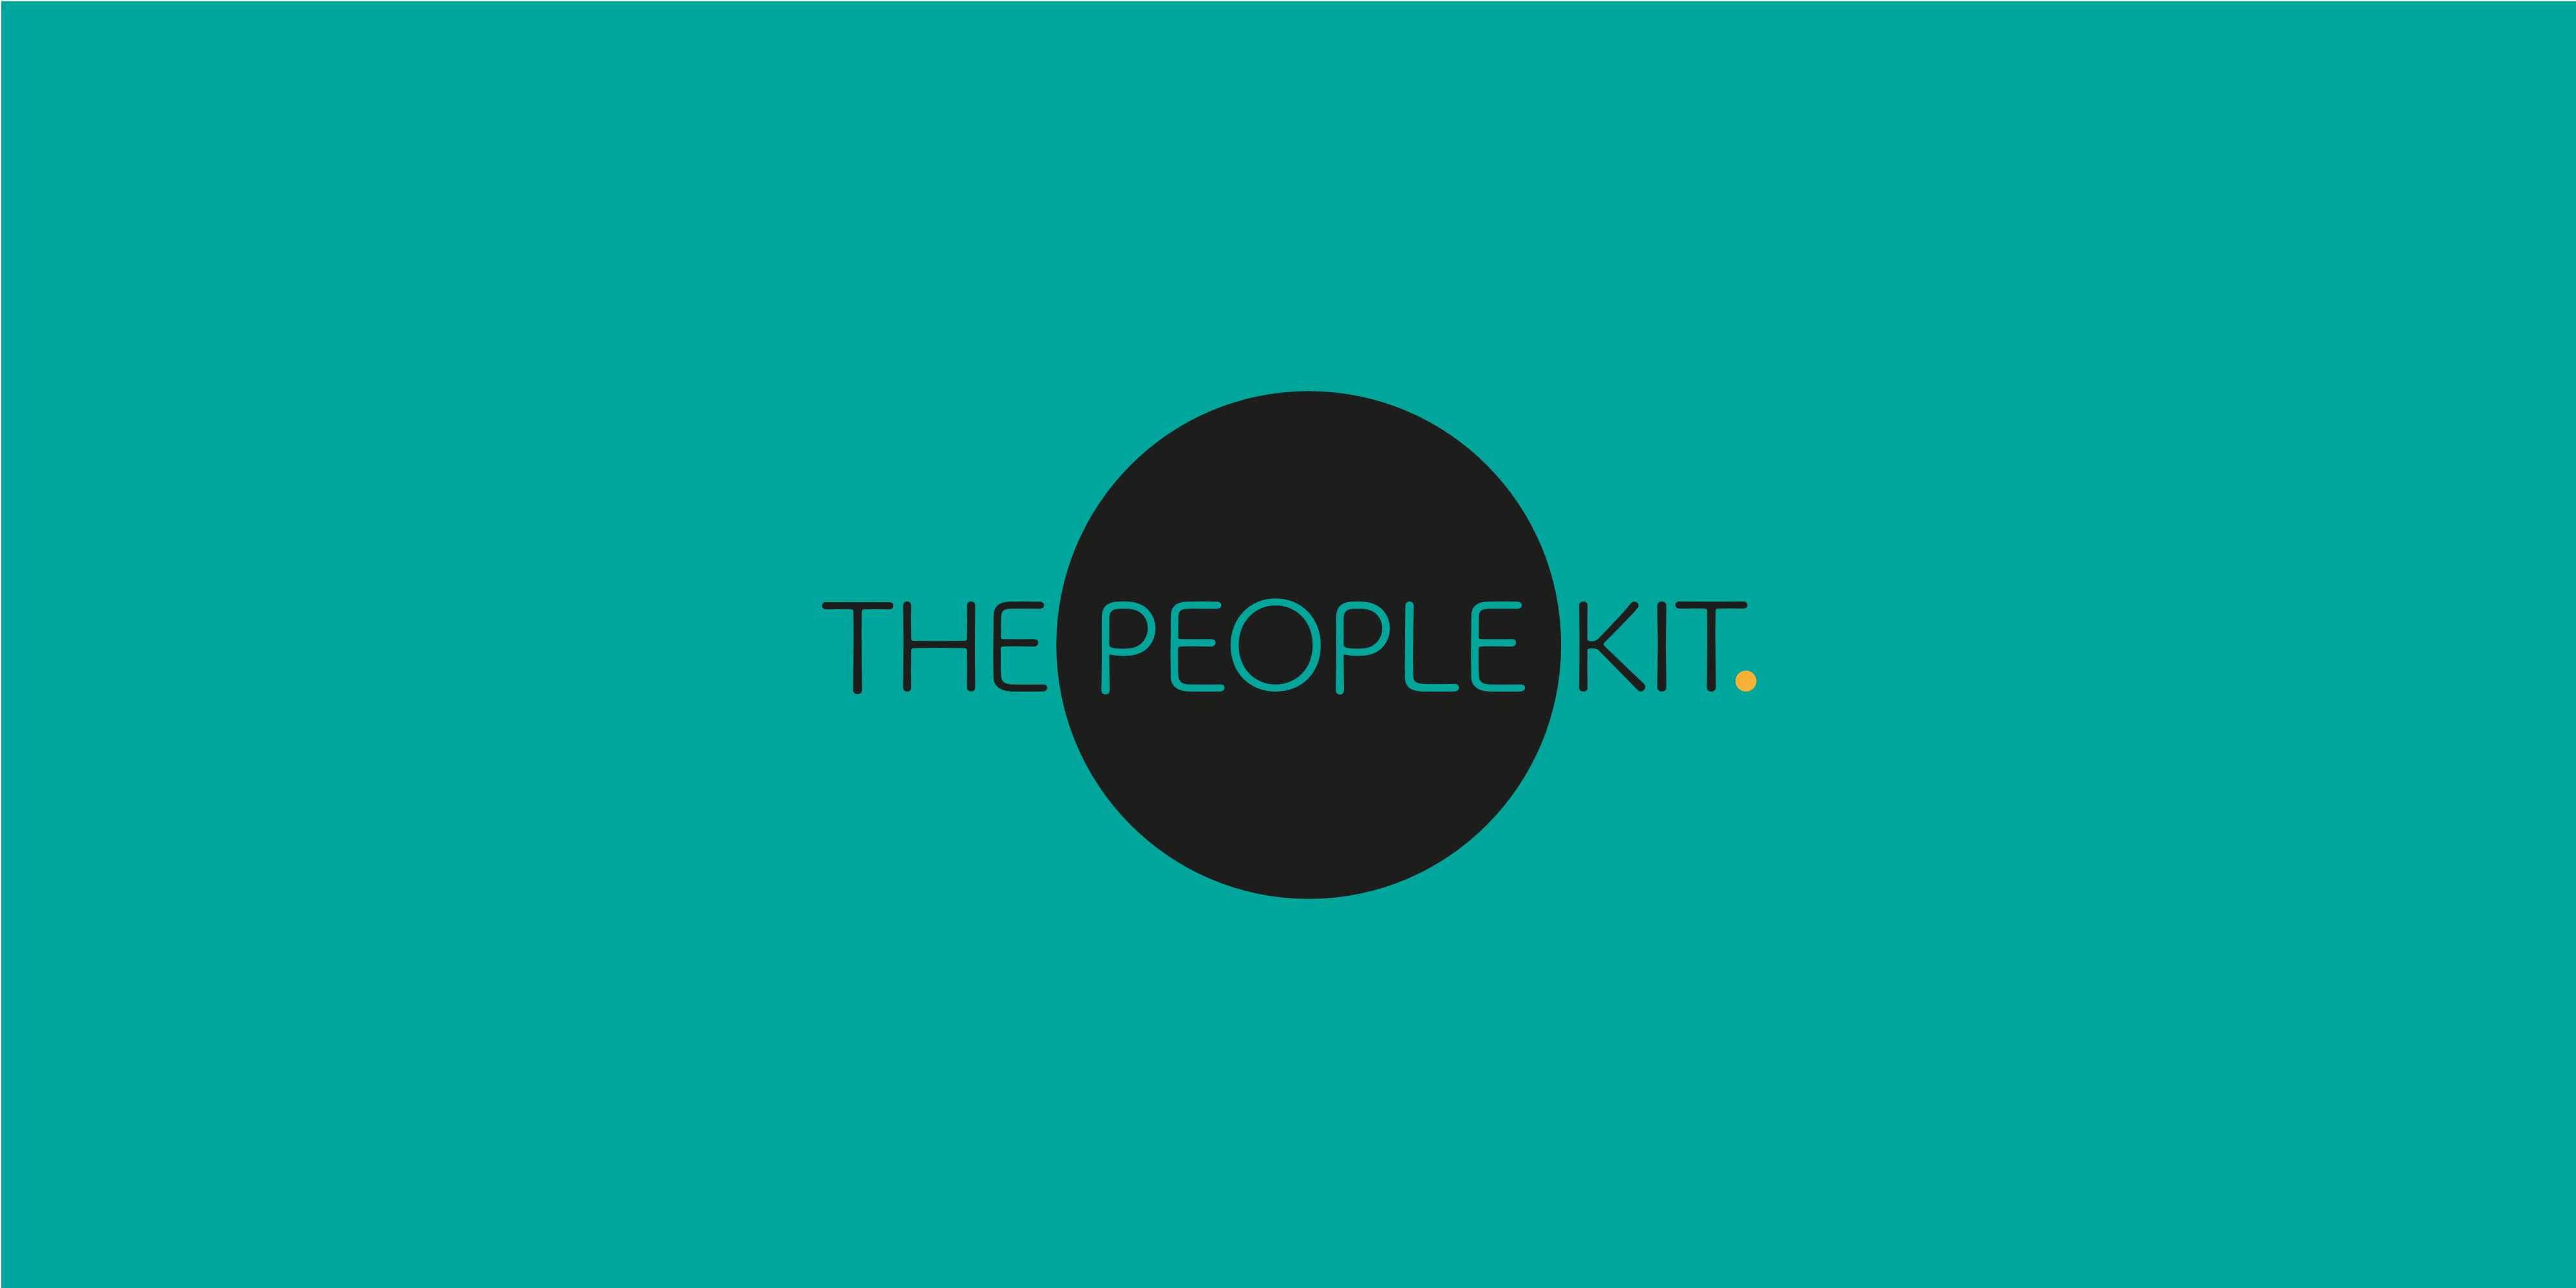 The People Kit logo